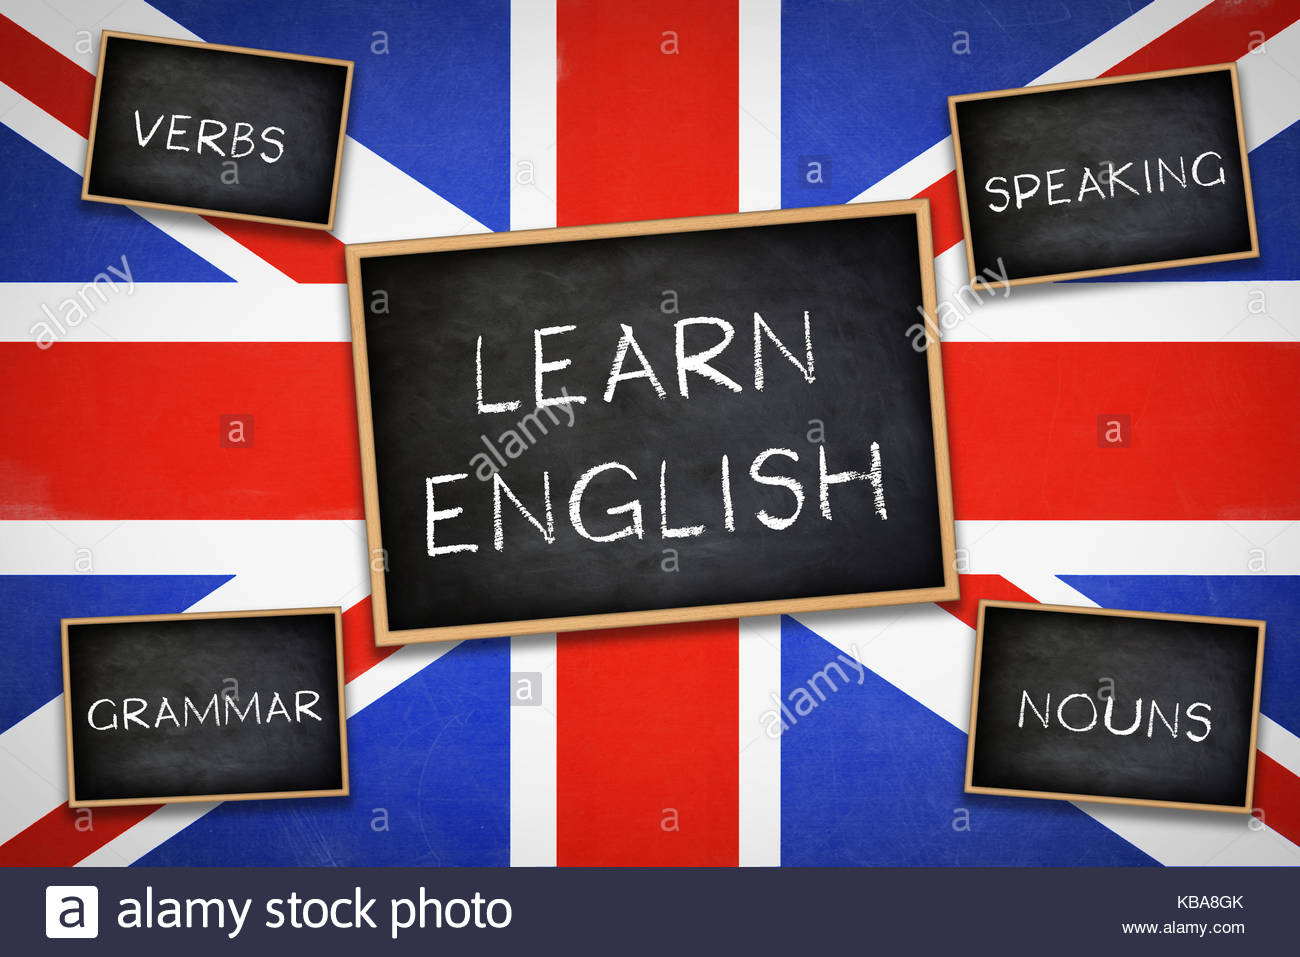 Learn English - Grammar Verbs Nouns Speaking - Practice - Stock Image